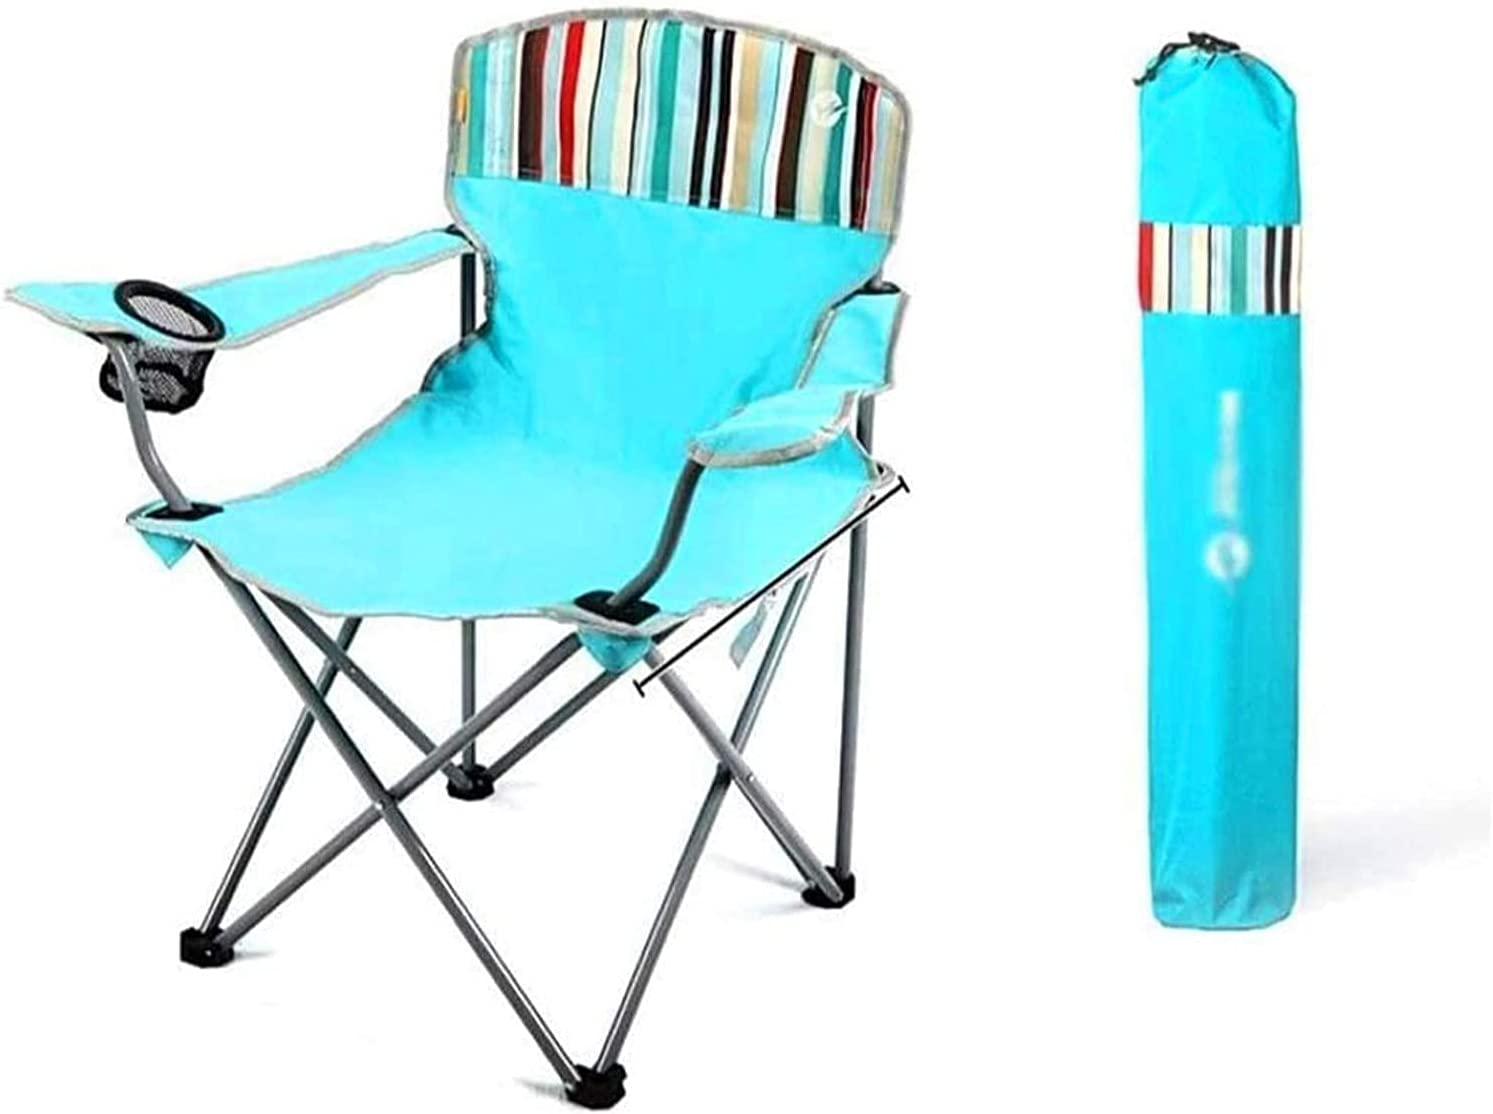 YGCBL Camping Stools Beach Chair,Comfortable Outdoor Chair Breat